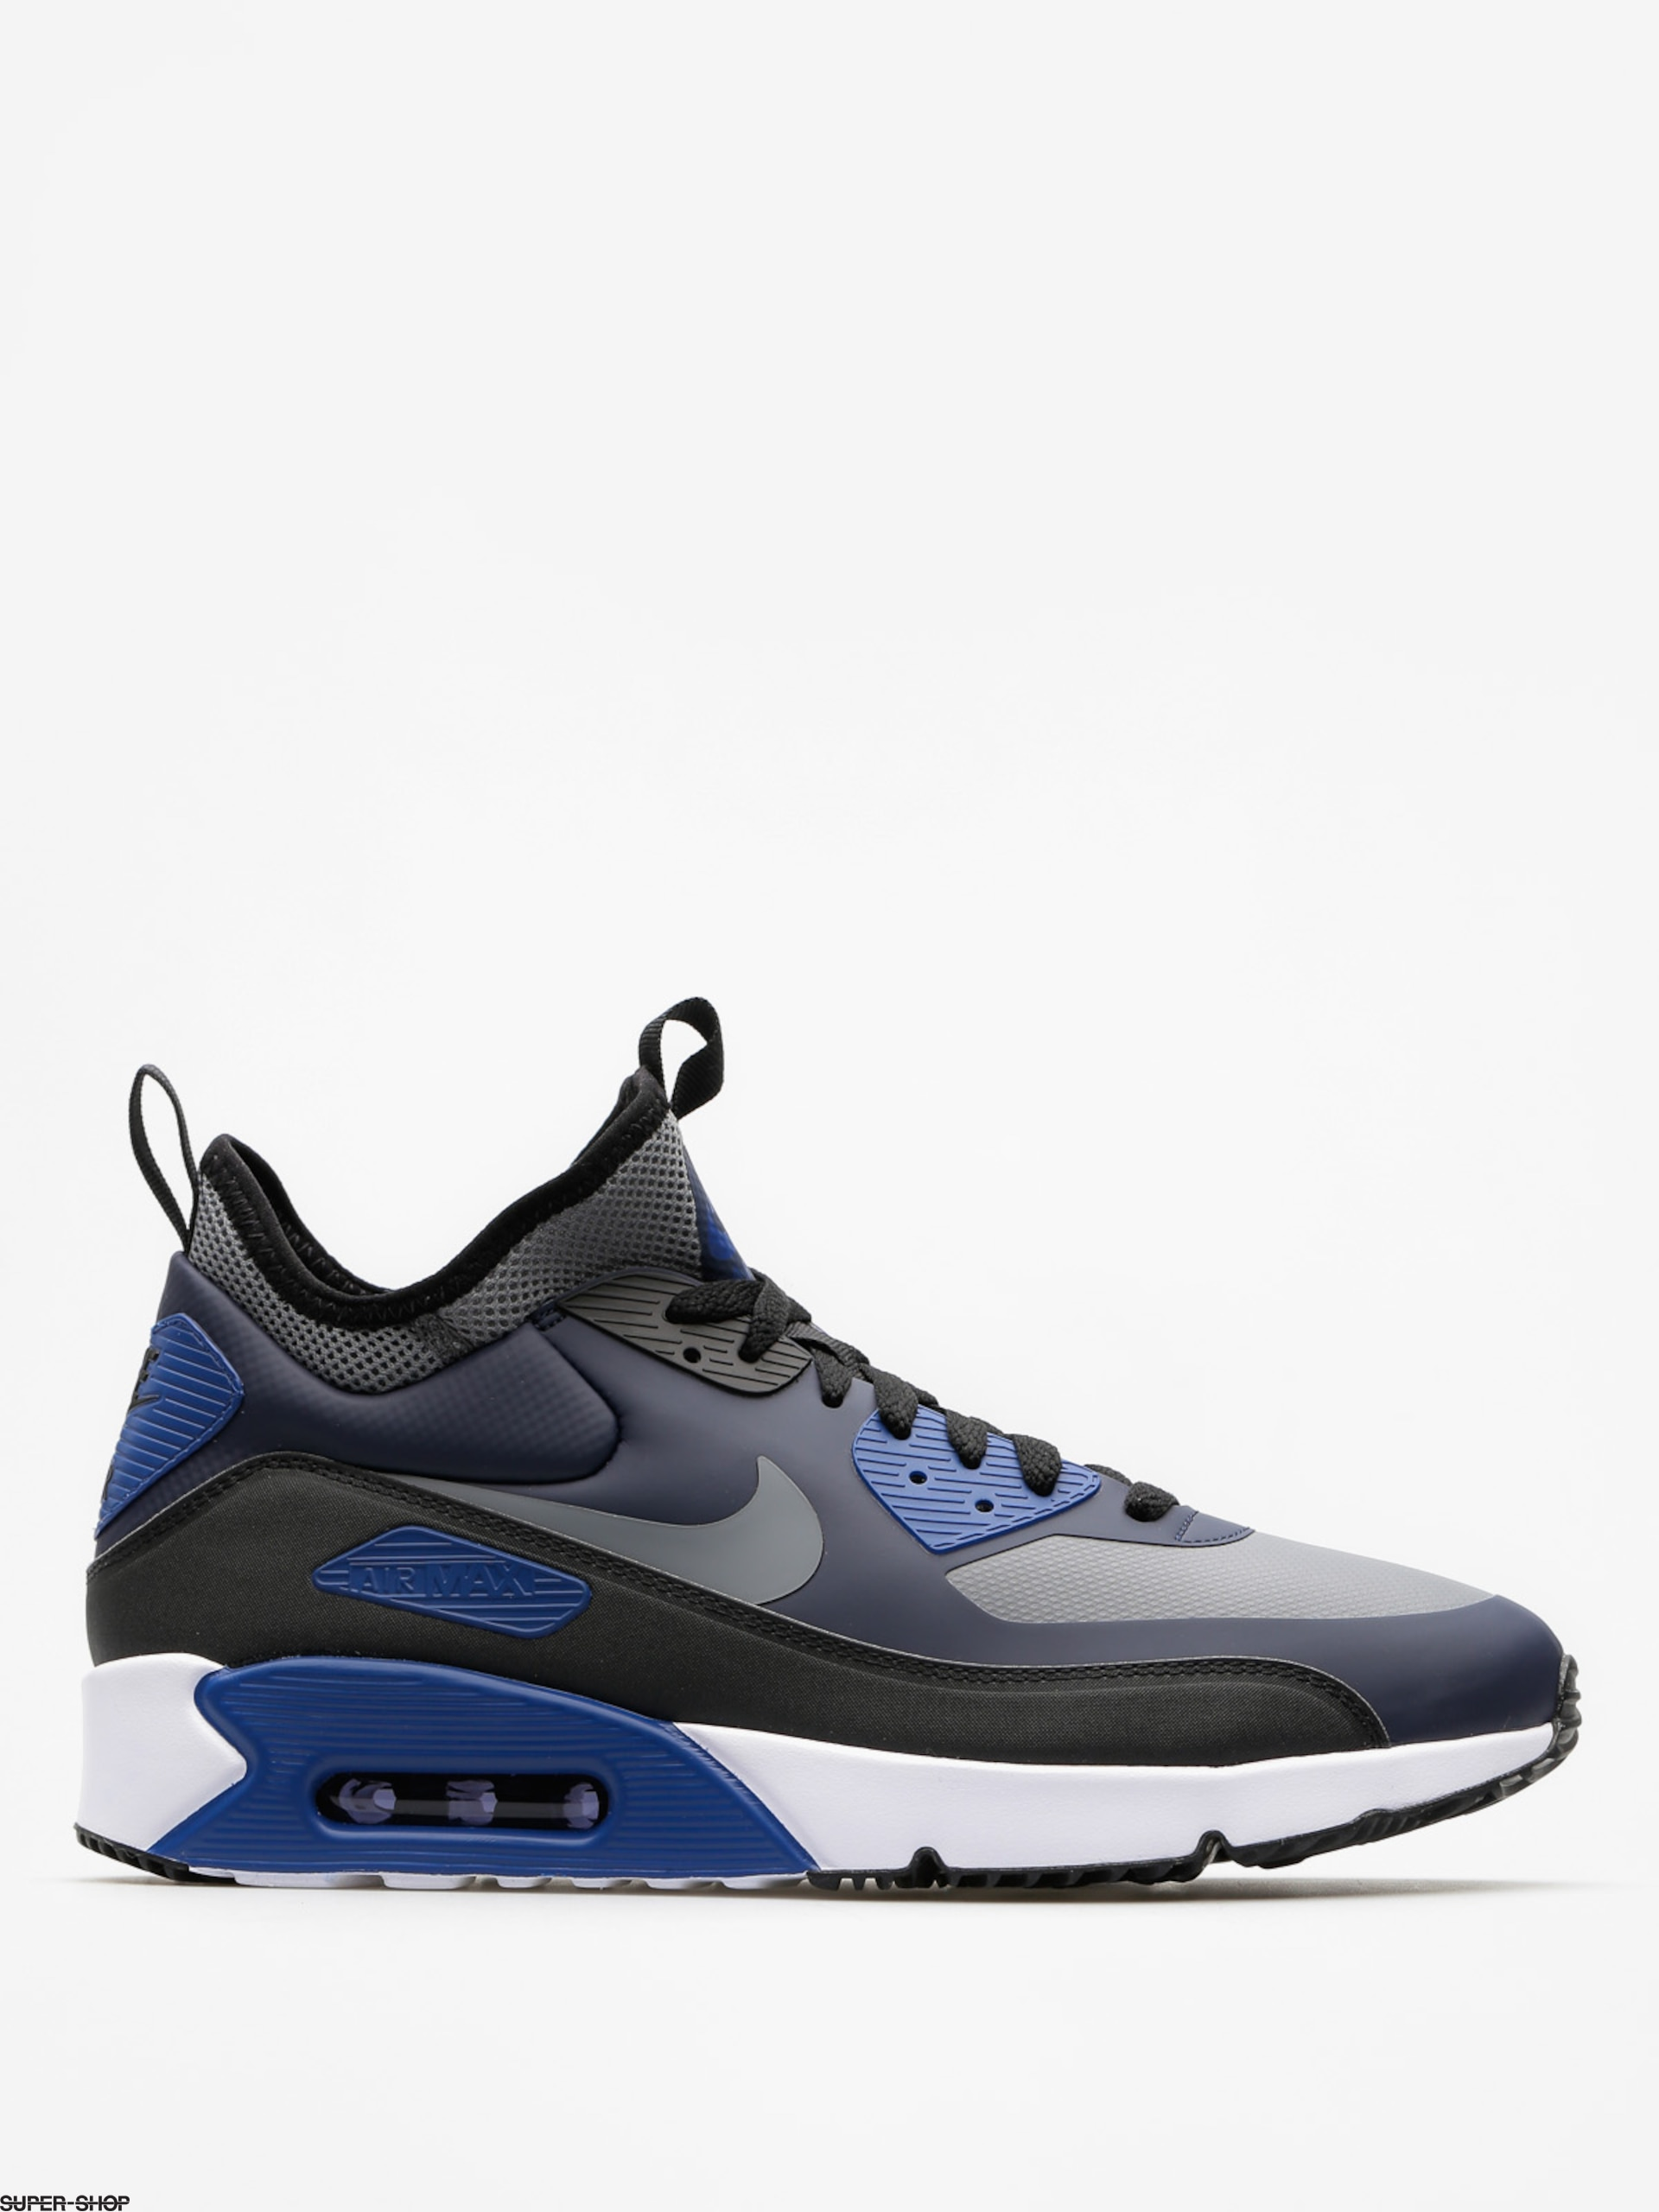 Nike Shoes Air Max 90 Ultra Mid Winter (obsidian/cool grey black gym blue)